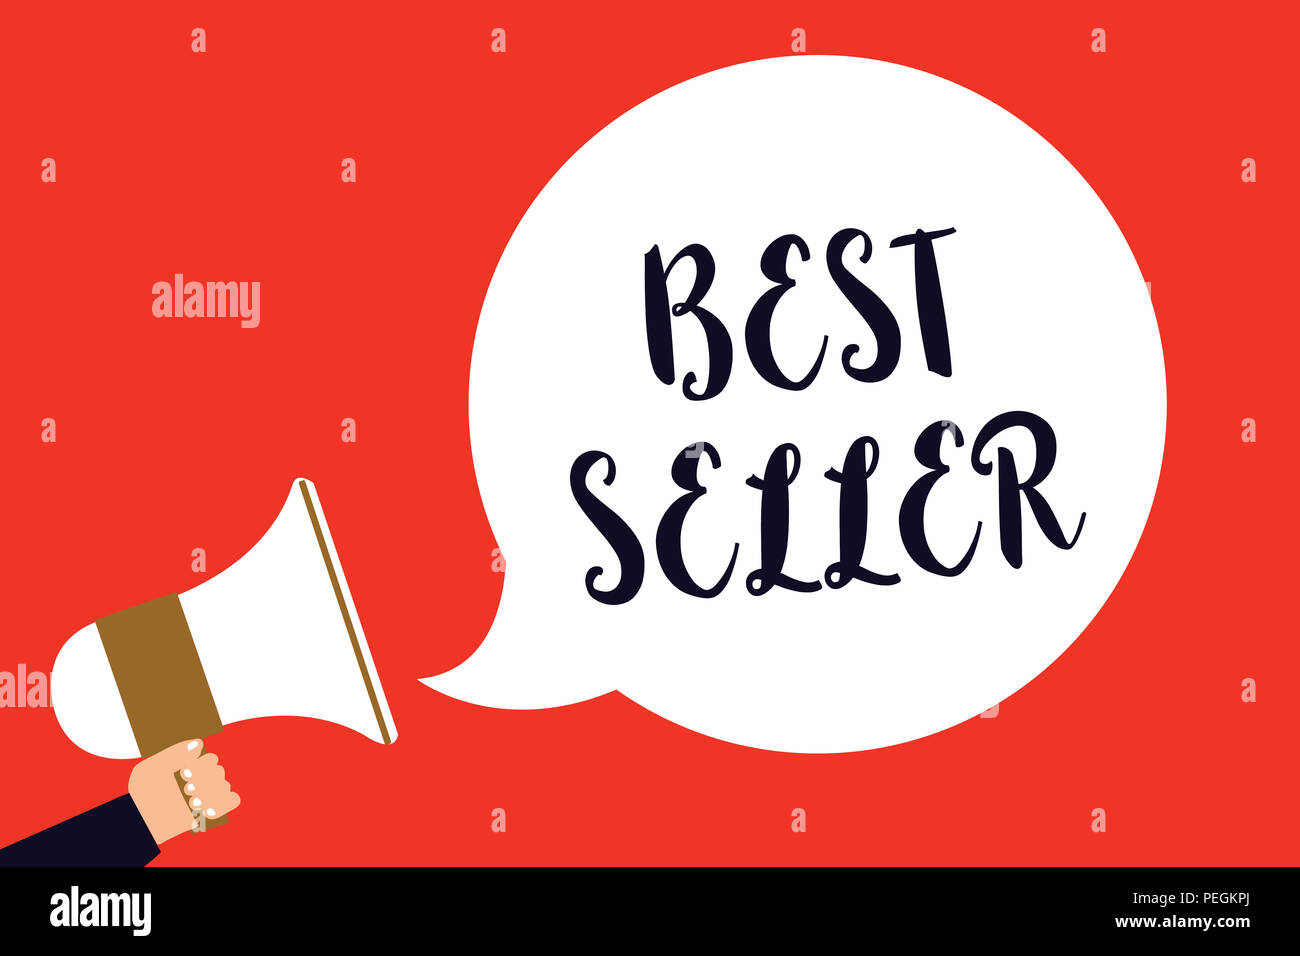 Handwriting Text Best Seller Concept Meaning Book Or Other Product